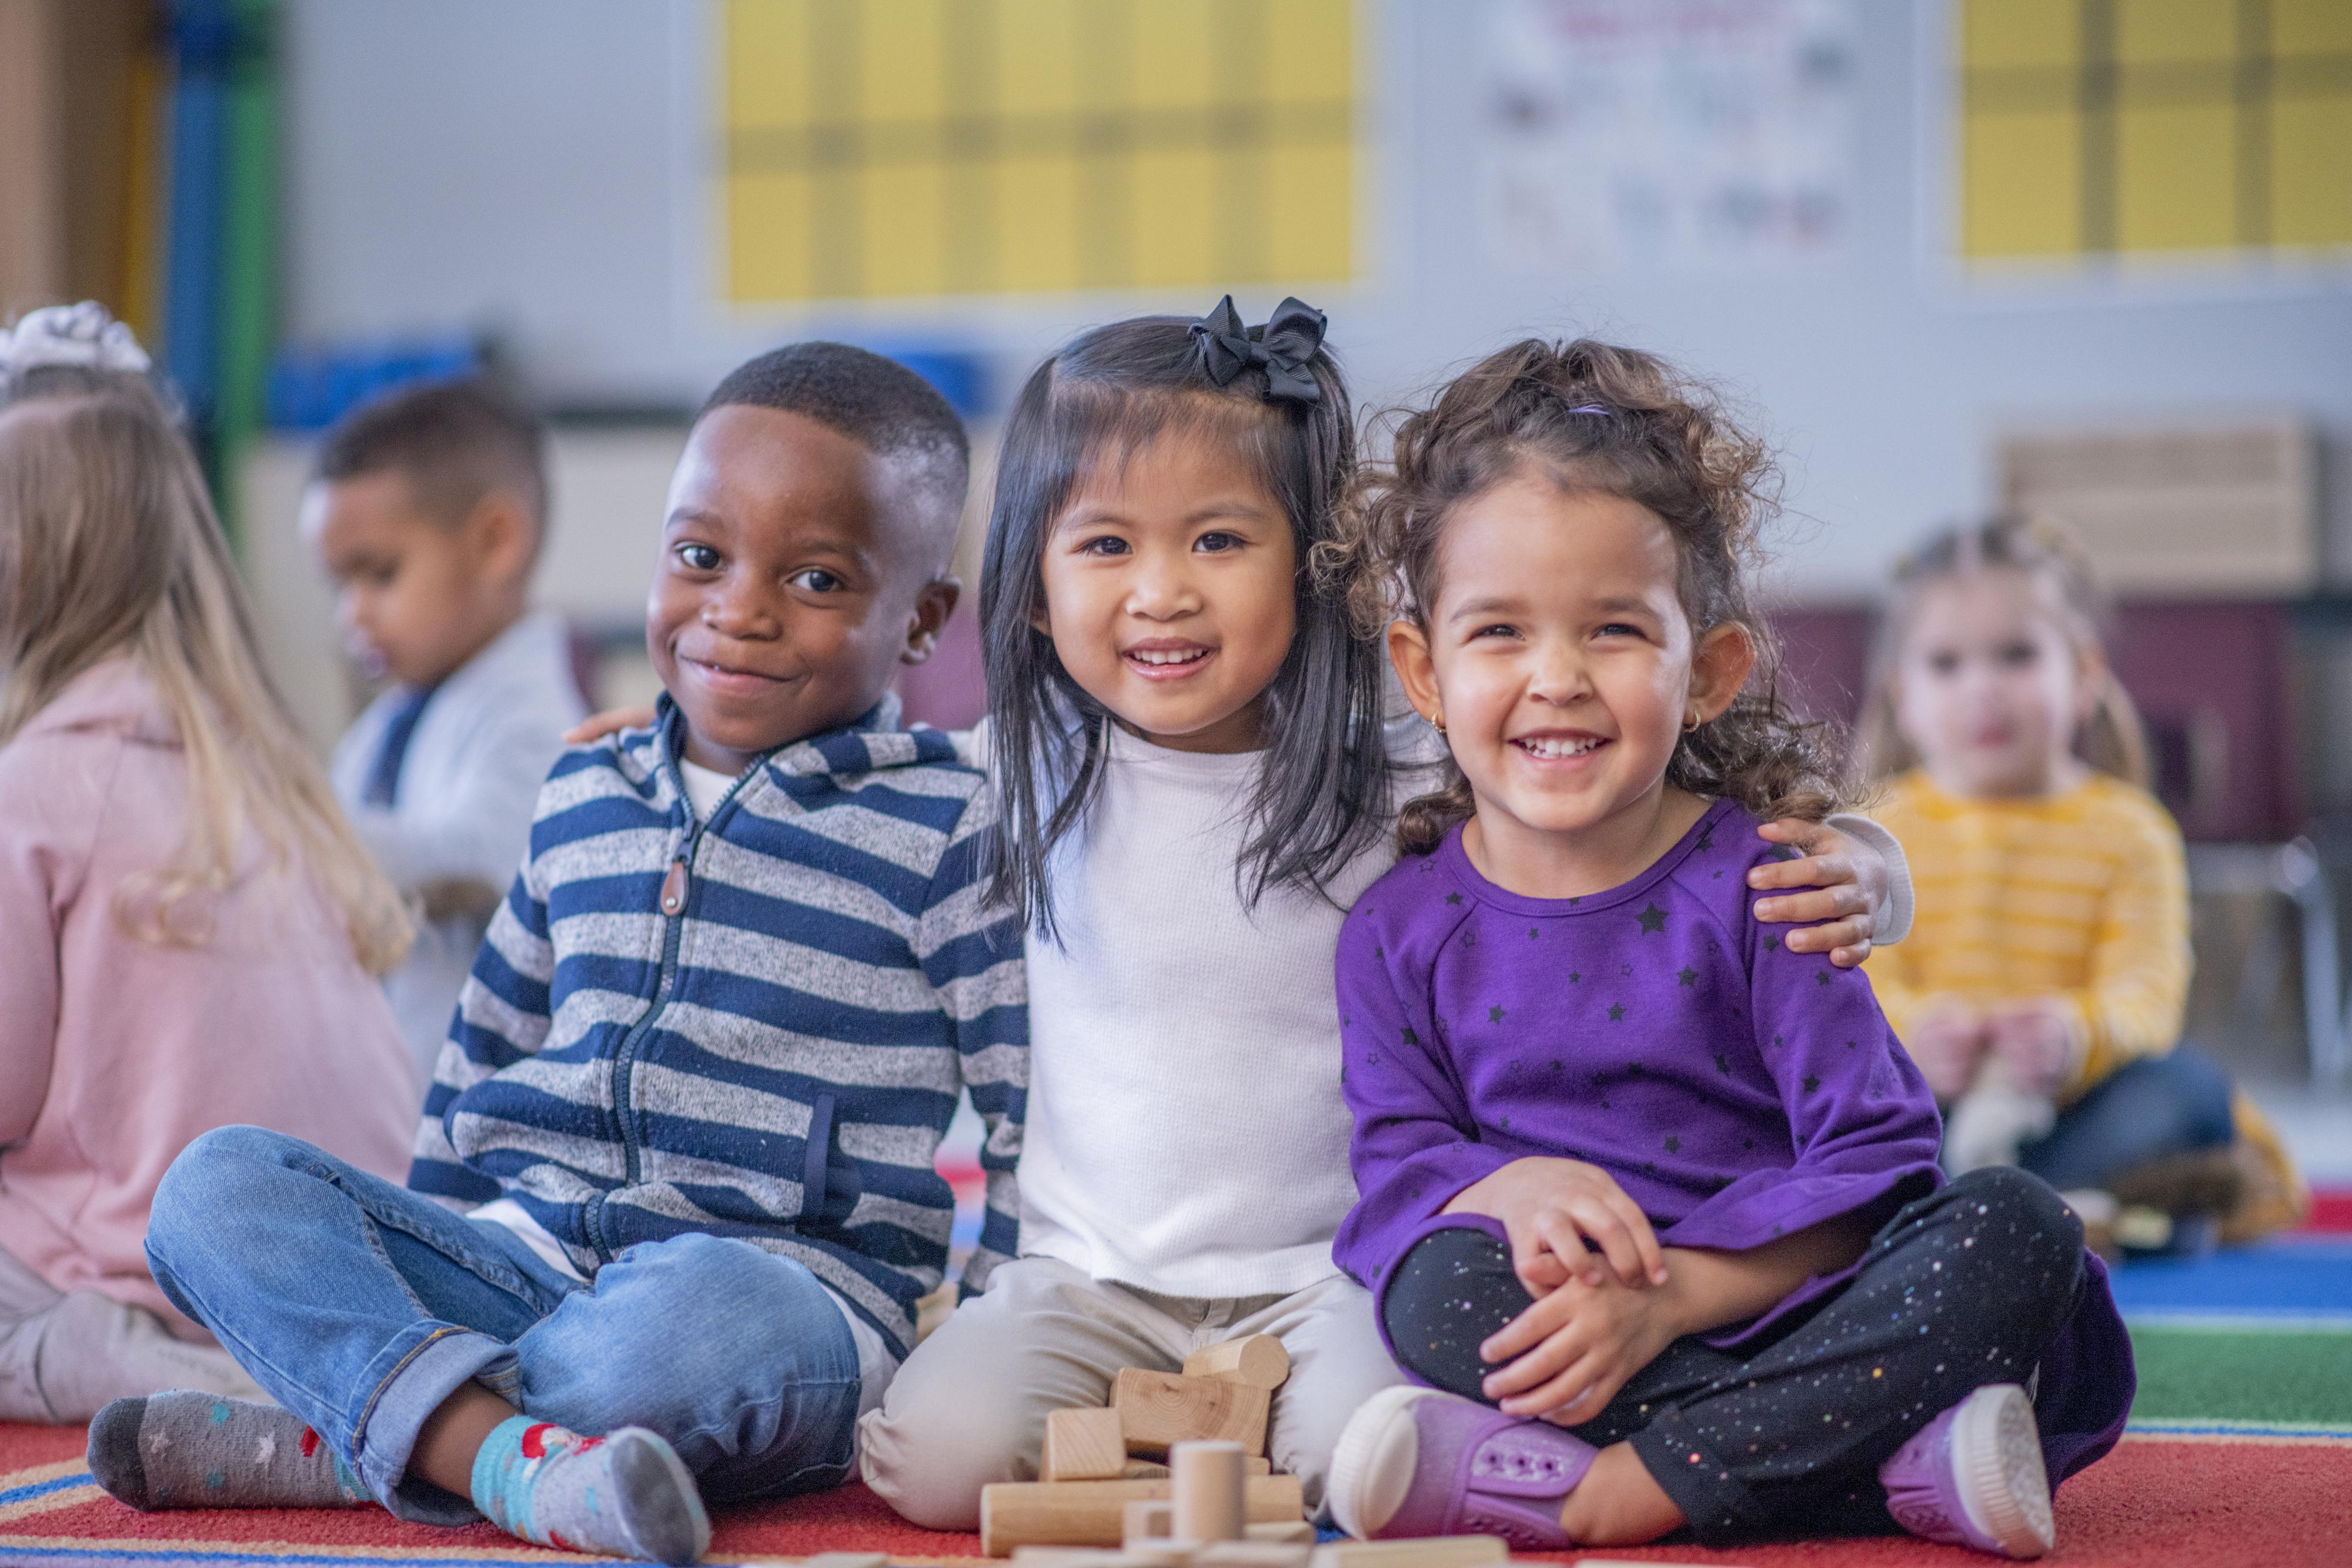 Three children sit together on the floor of a classroom and smile for the camera.